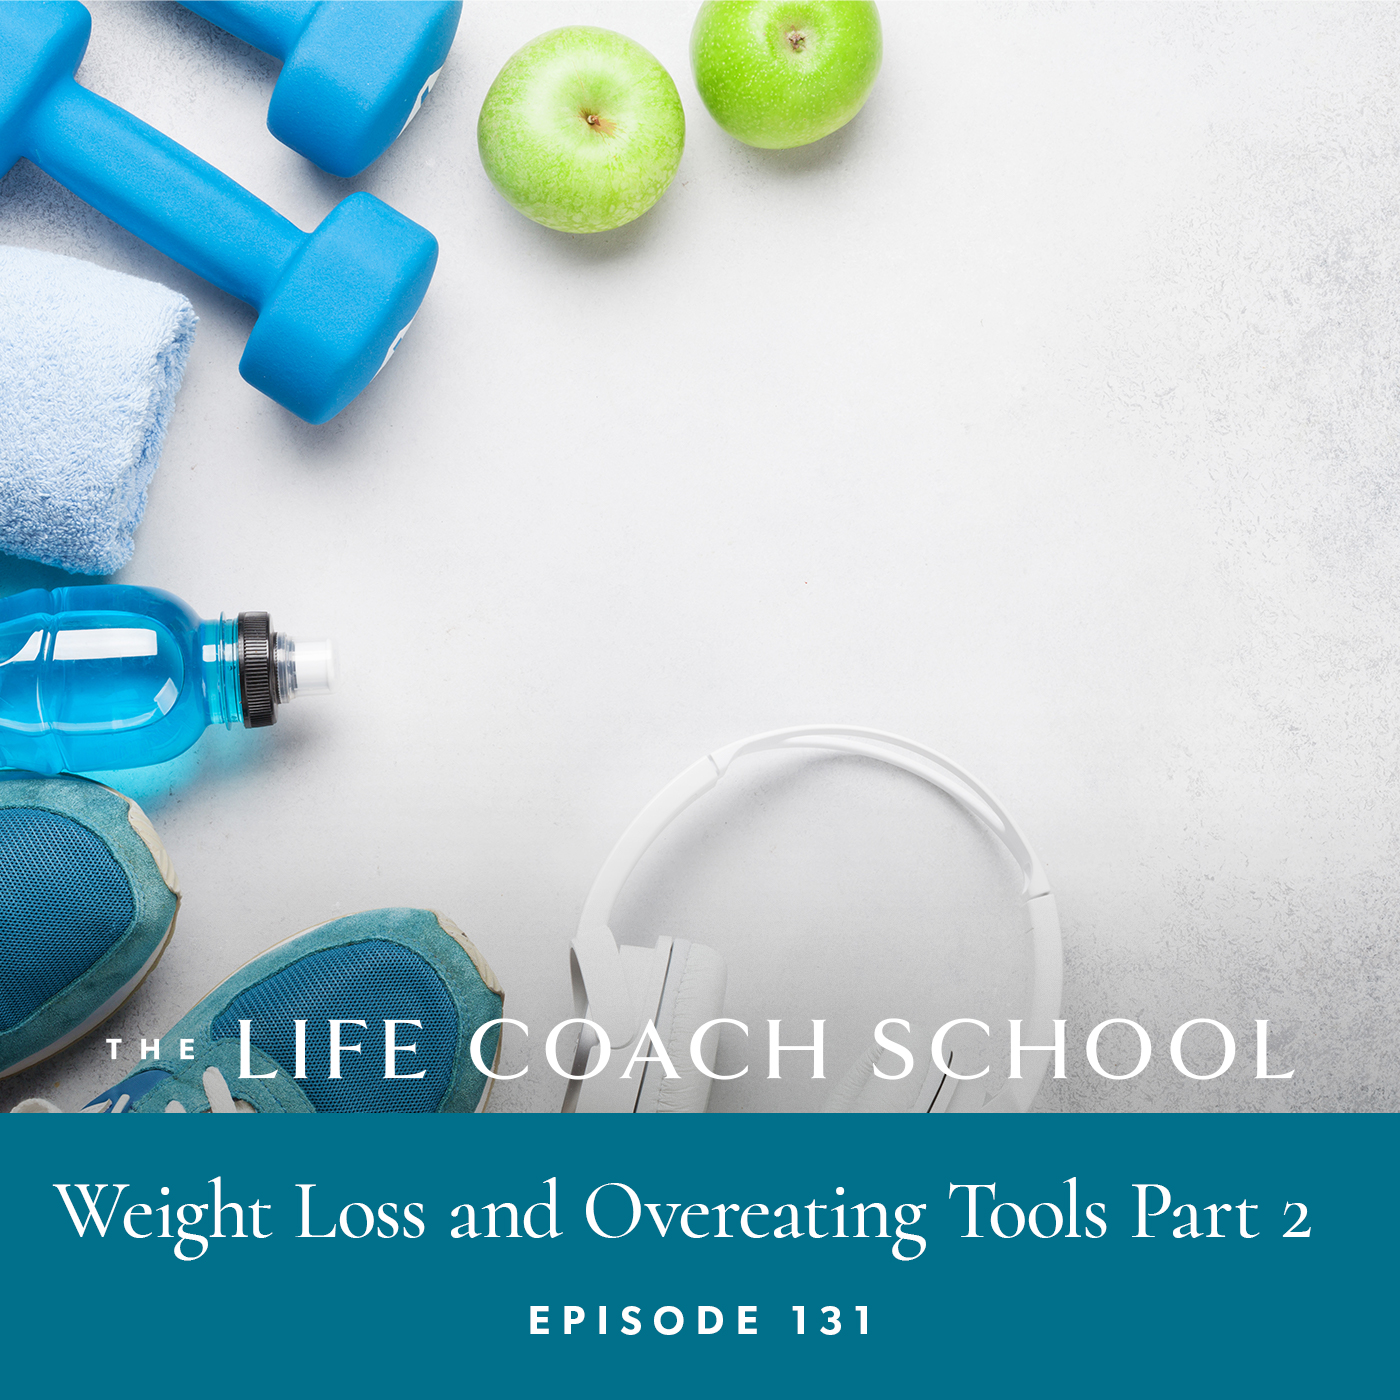 The Life Coach School Podcast with Brooke Castillo | Episode 131 | Weight Loss and Overeating Tools Part 2